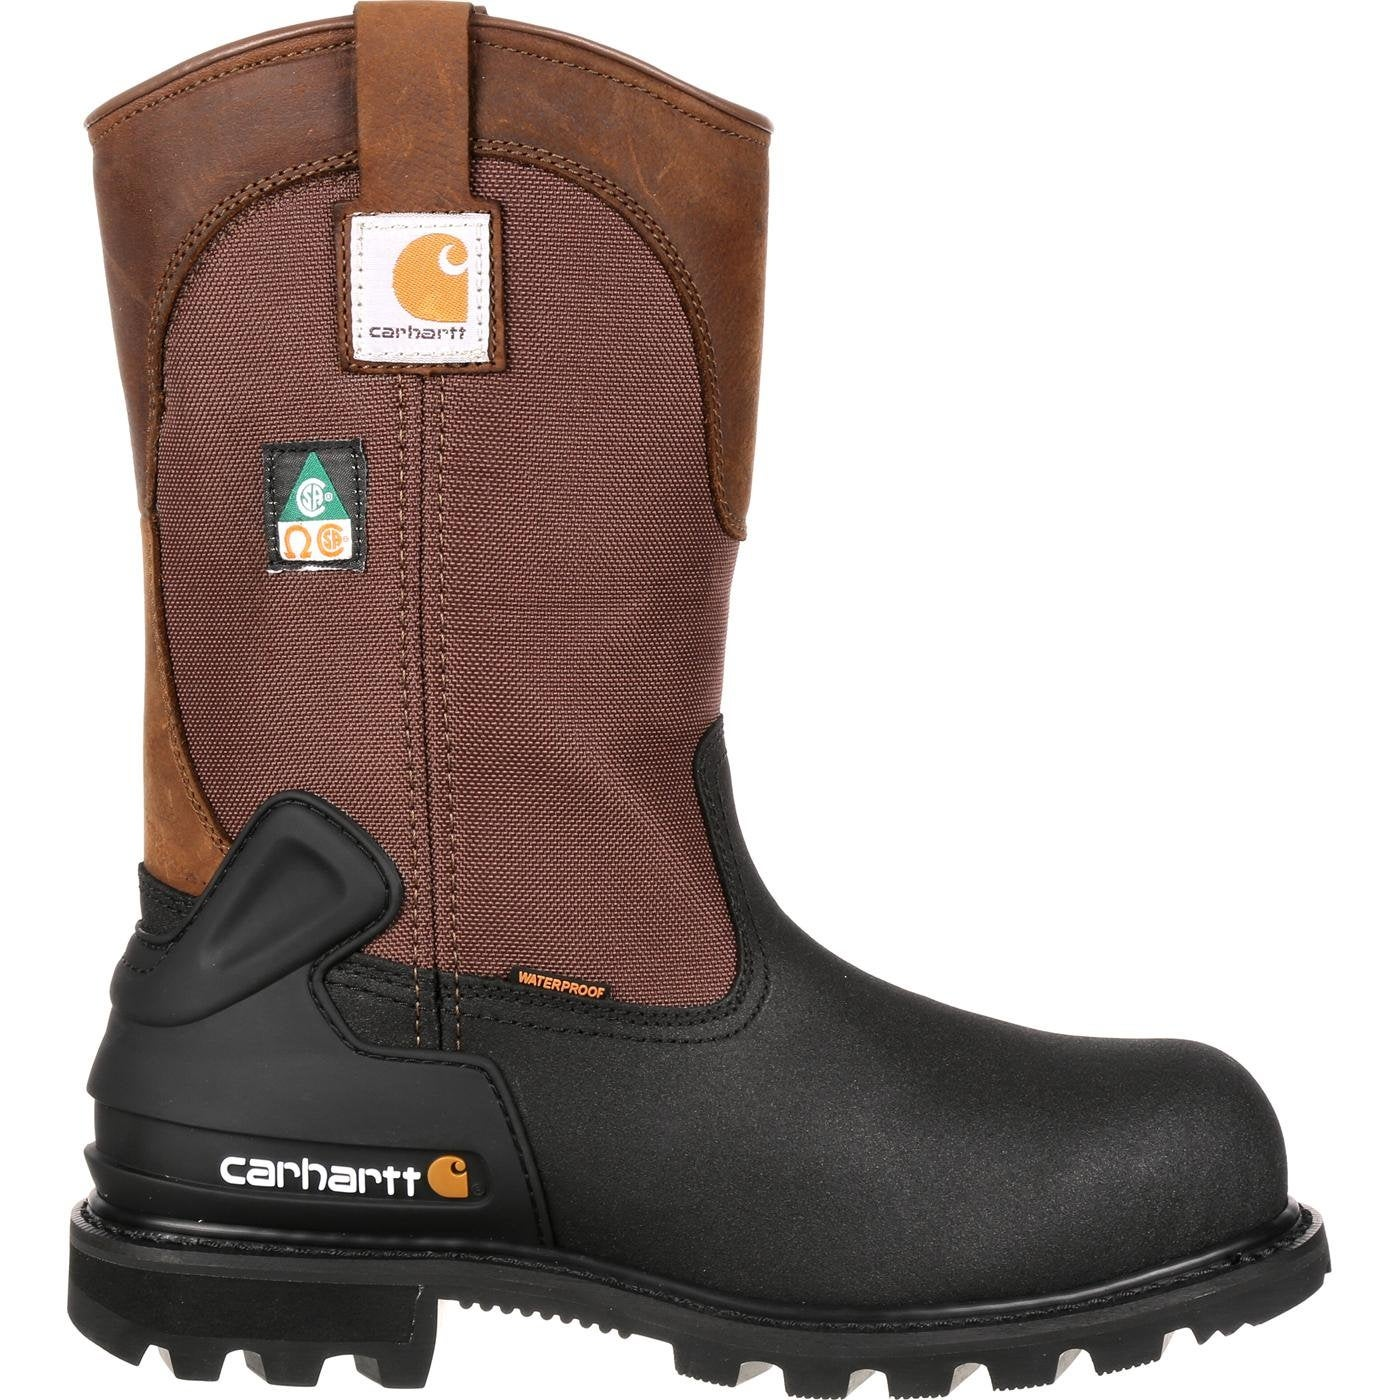 bfa80c03185 Carhartt CSA-Approved Steel Toe Puncture-Resistant Wellington Work Boot